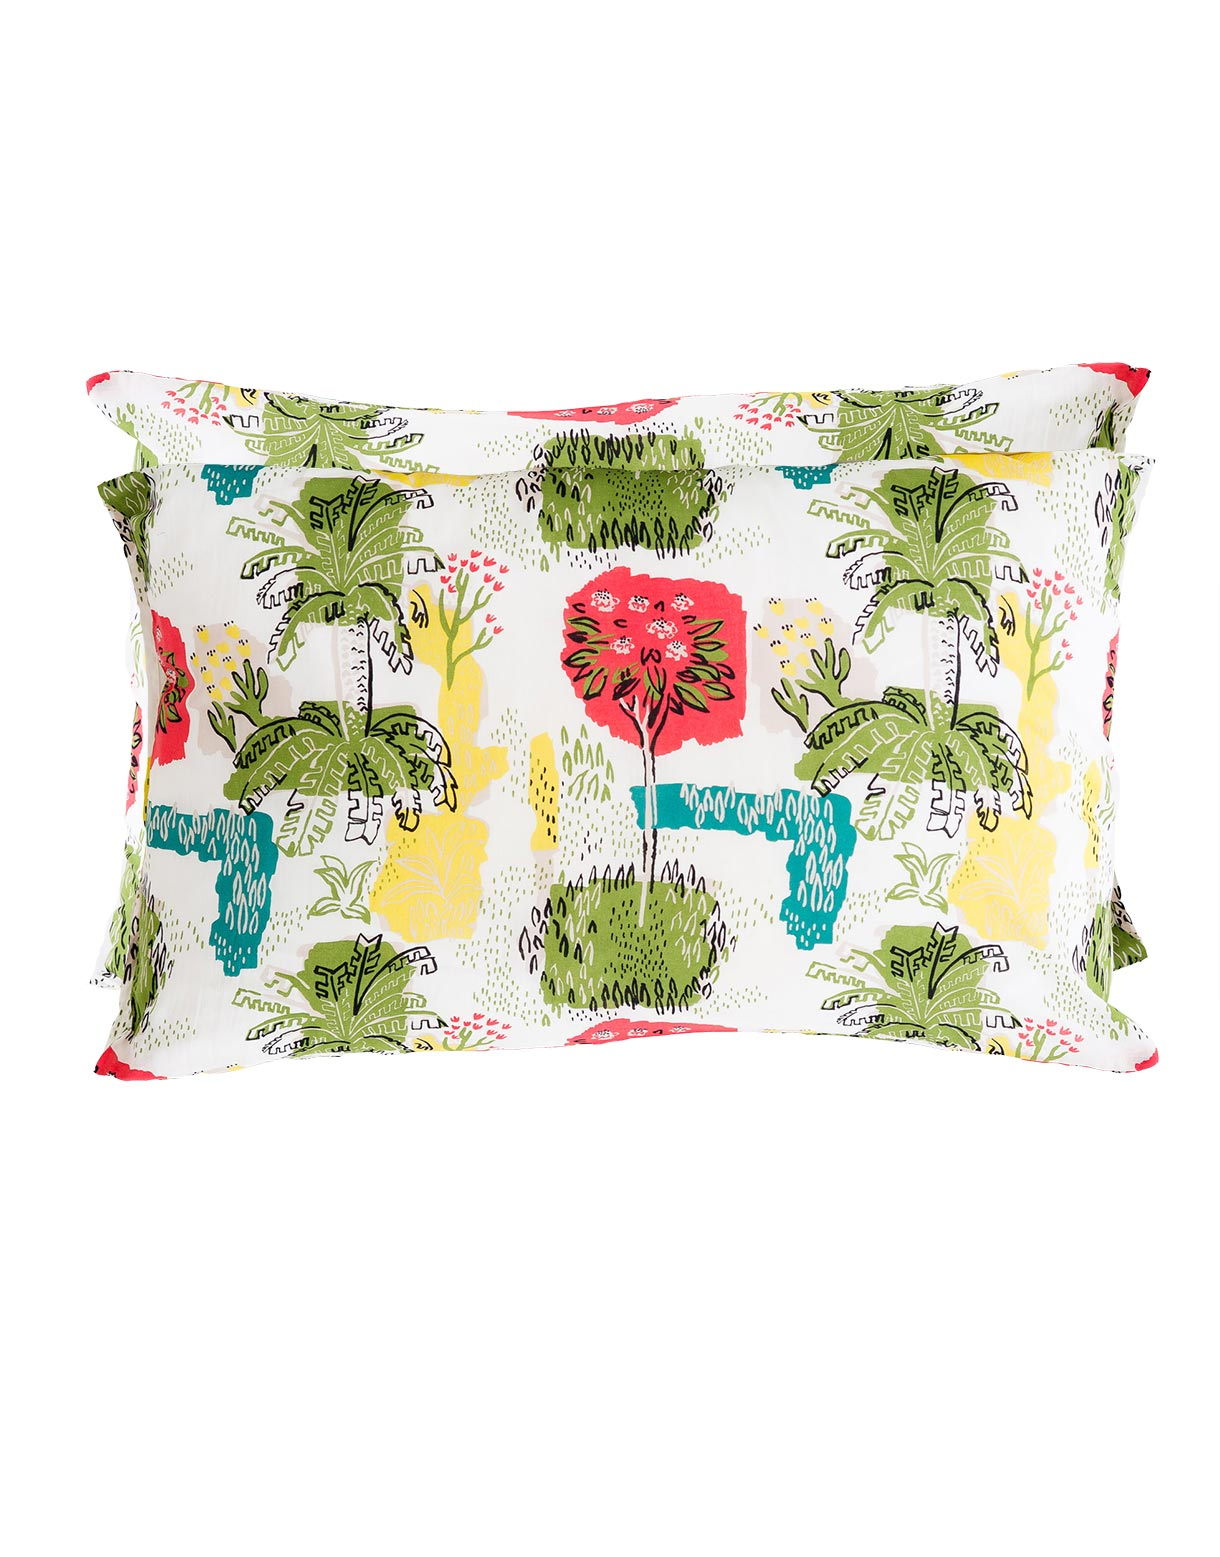 Pillowcase set in Paradise